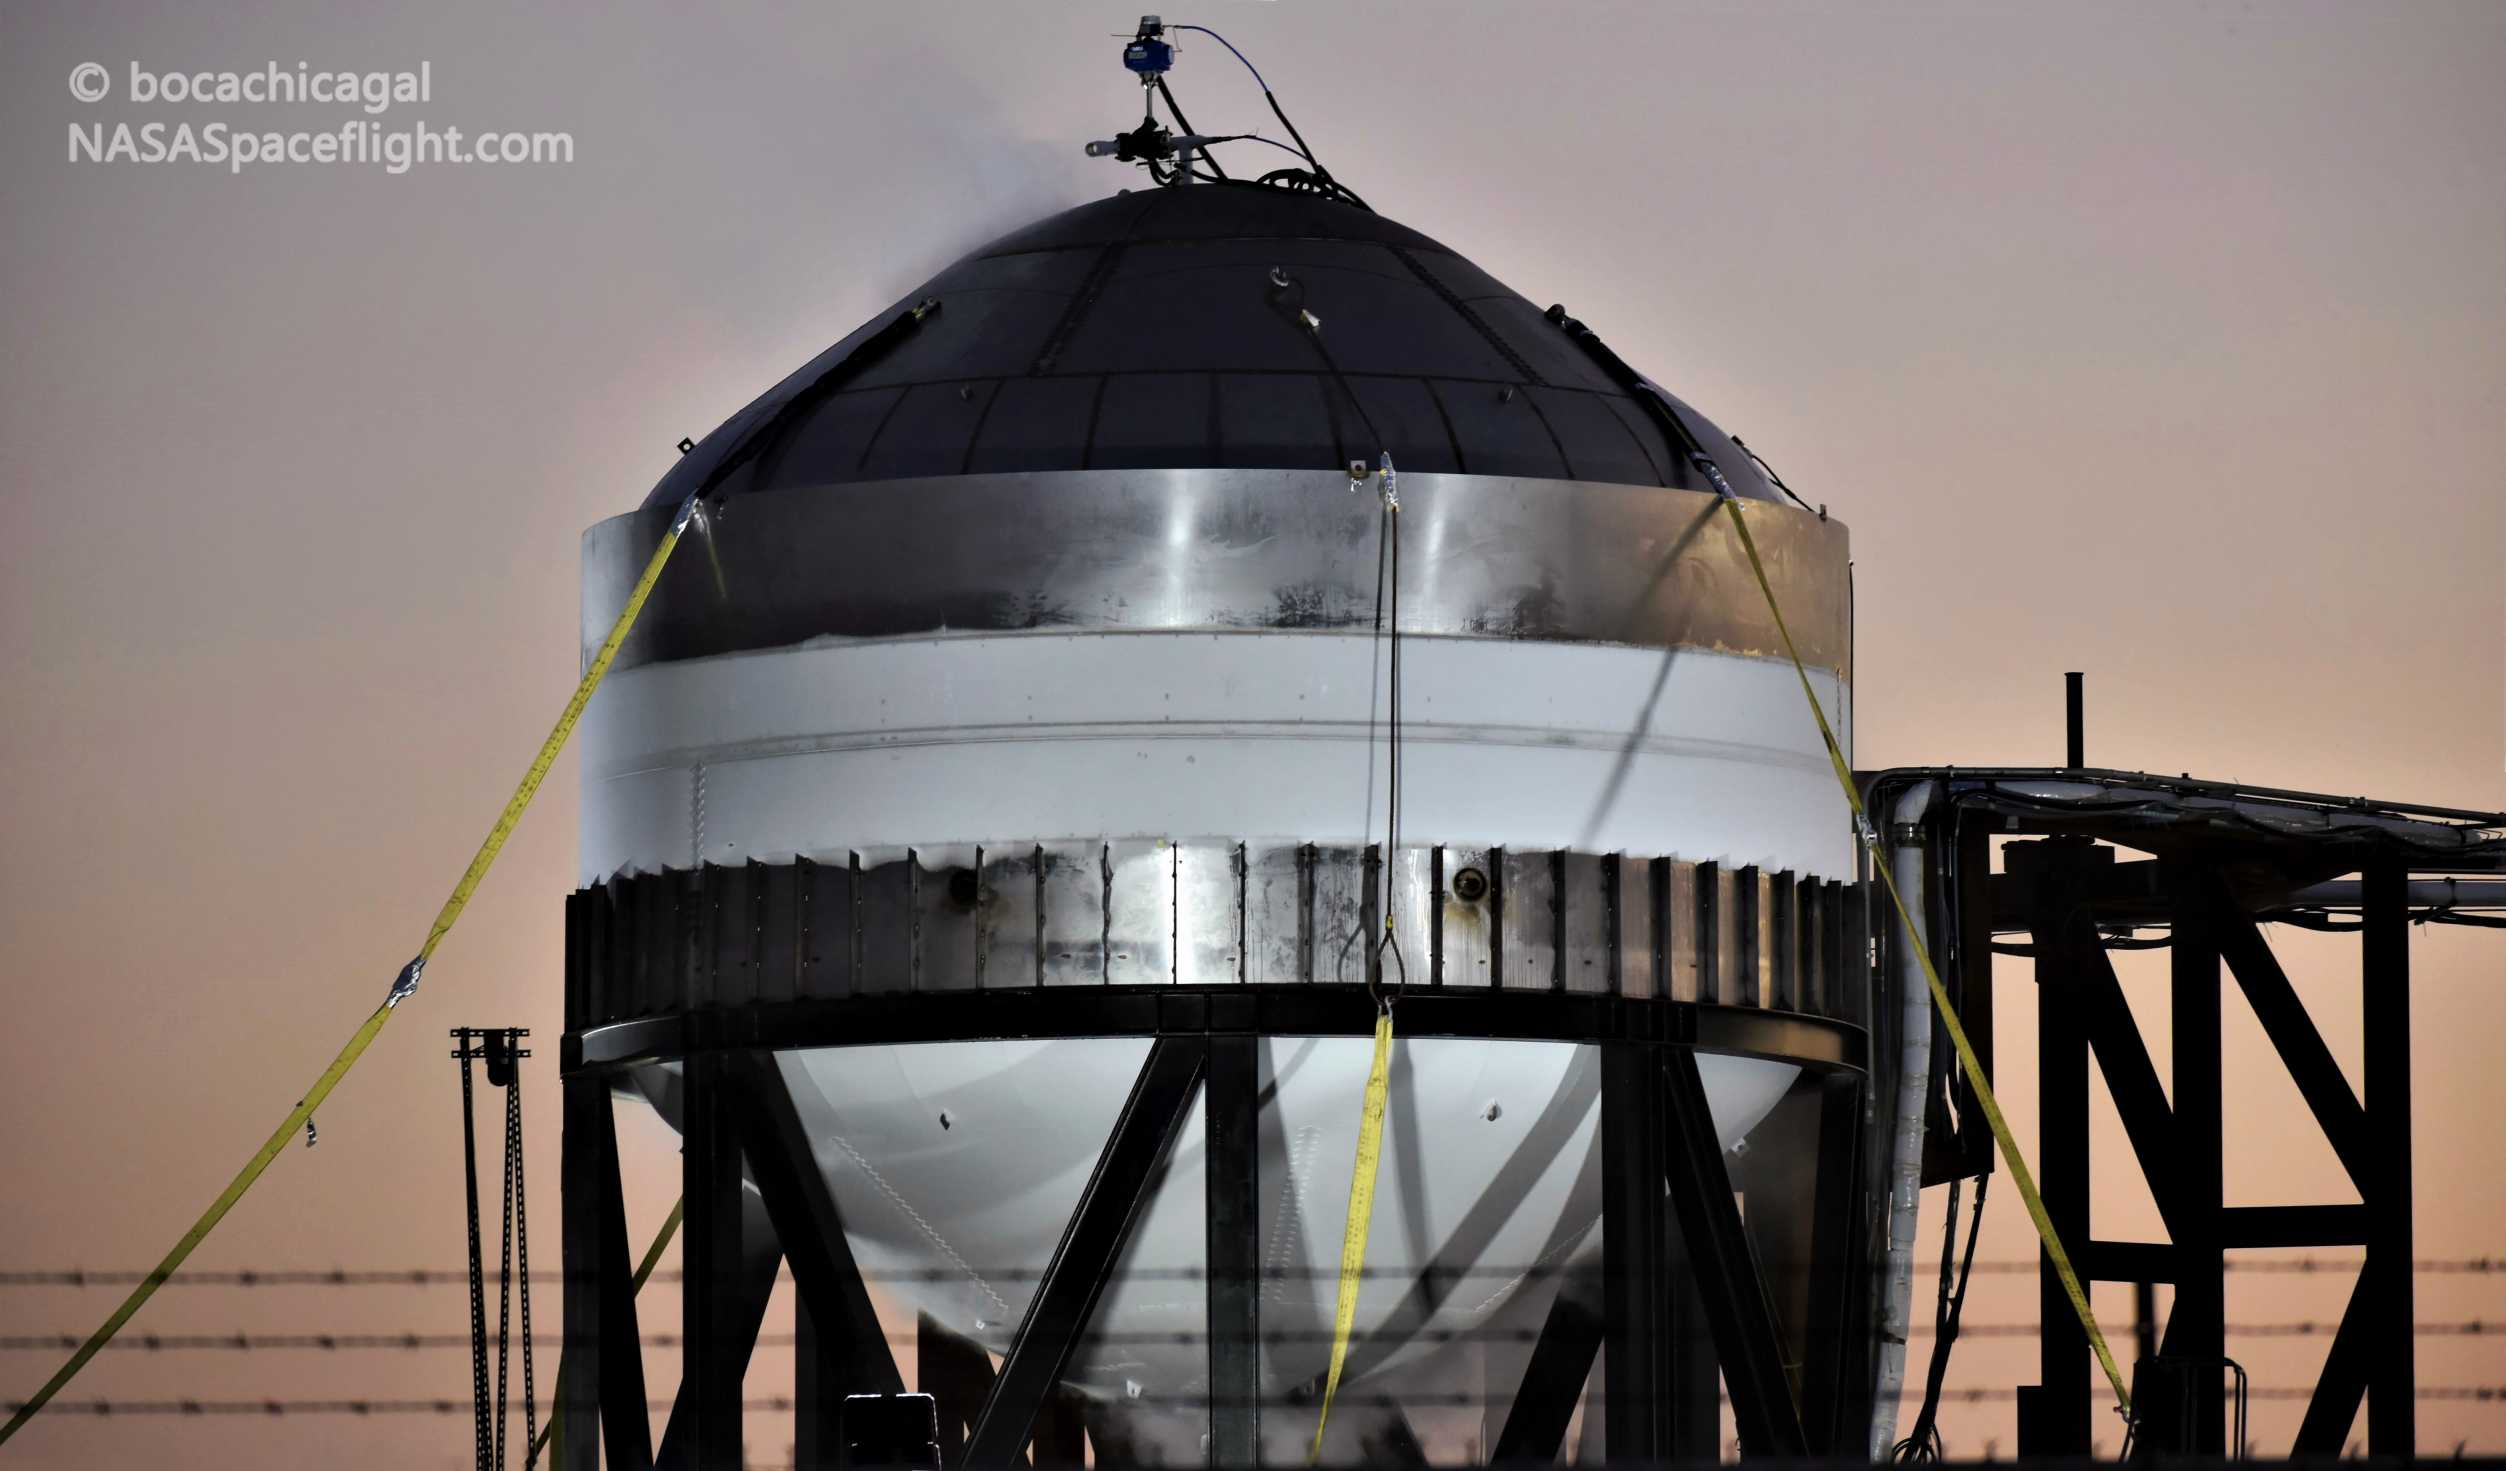 Starship Boca Chica 012820 (NASASpaceflight – bocachicagal) frosty test tank #2 2 (c)